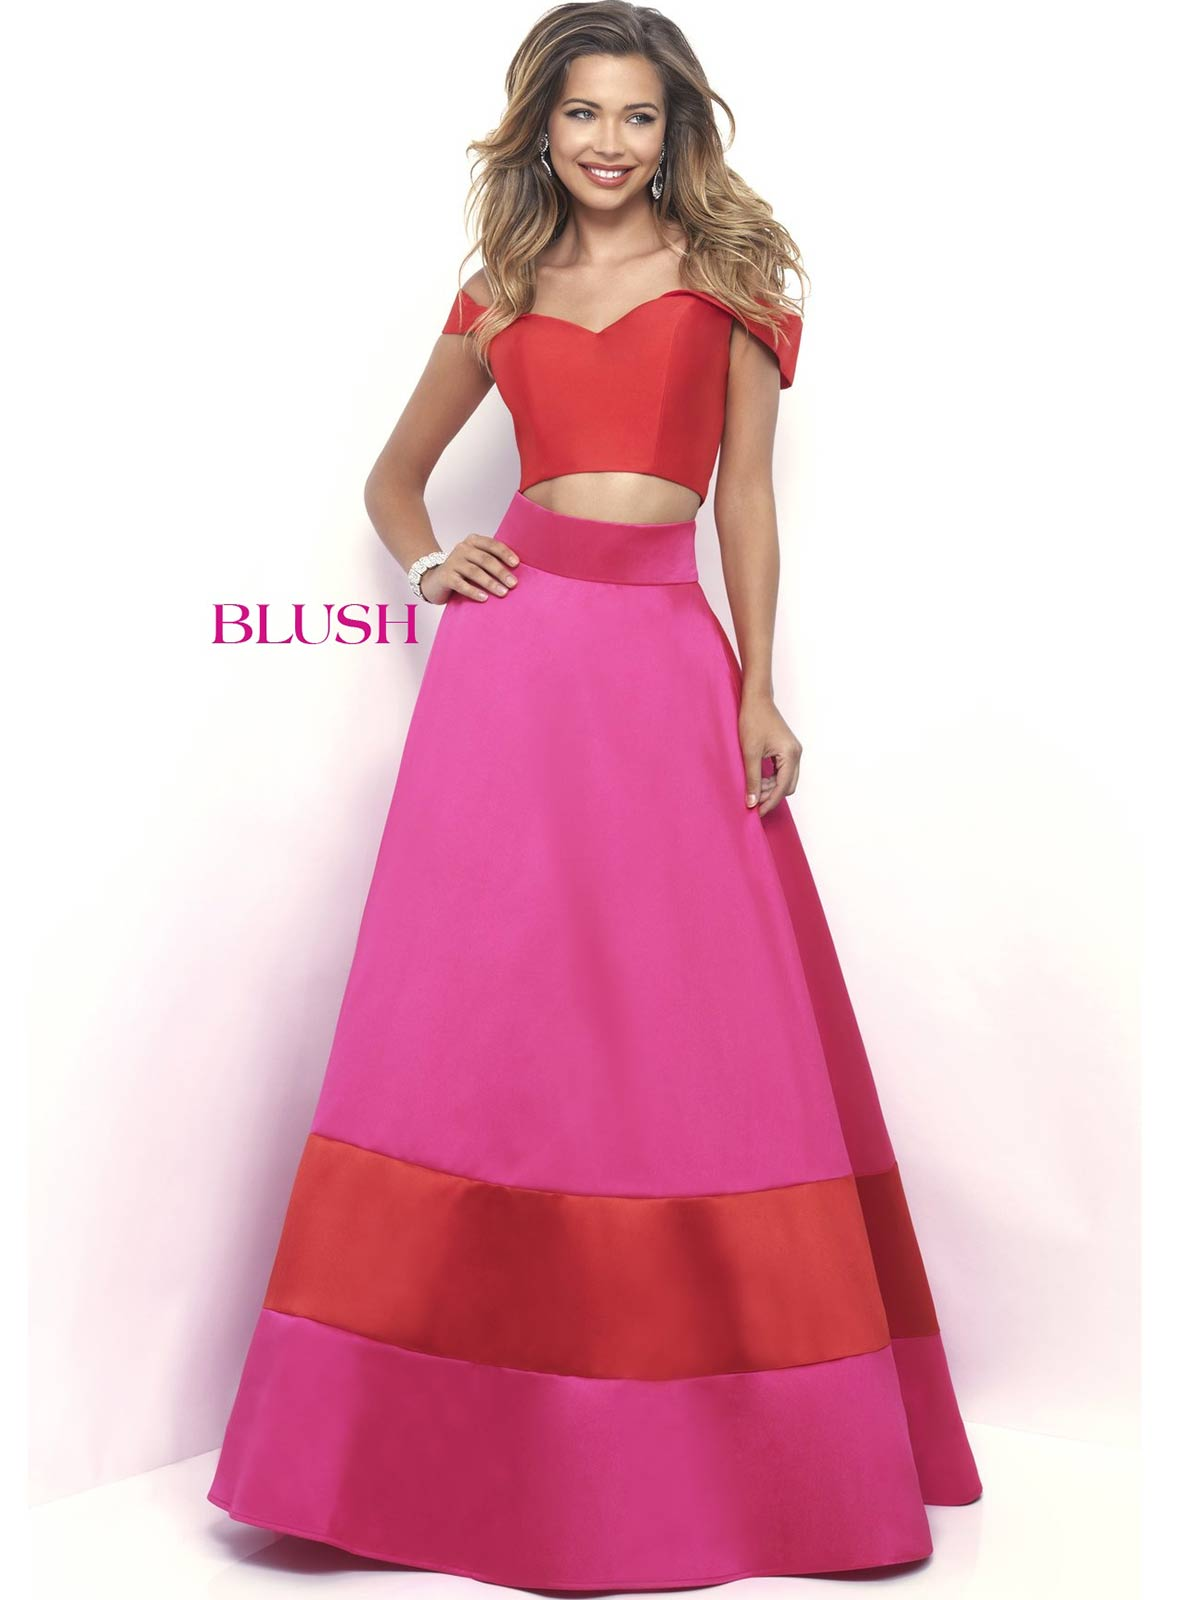 Blush 5623 Off The Shoulder Prom Ball Gown|DressProm.net